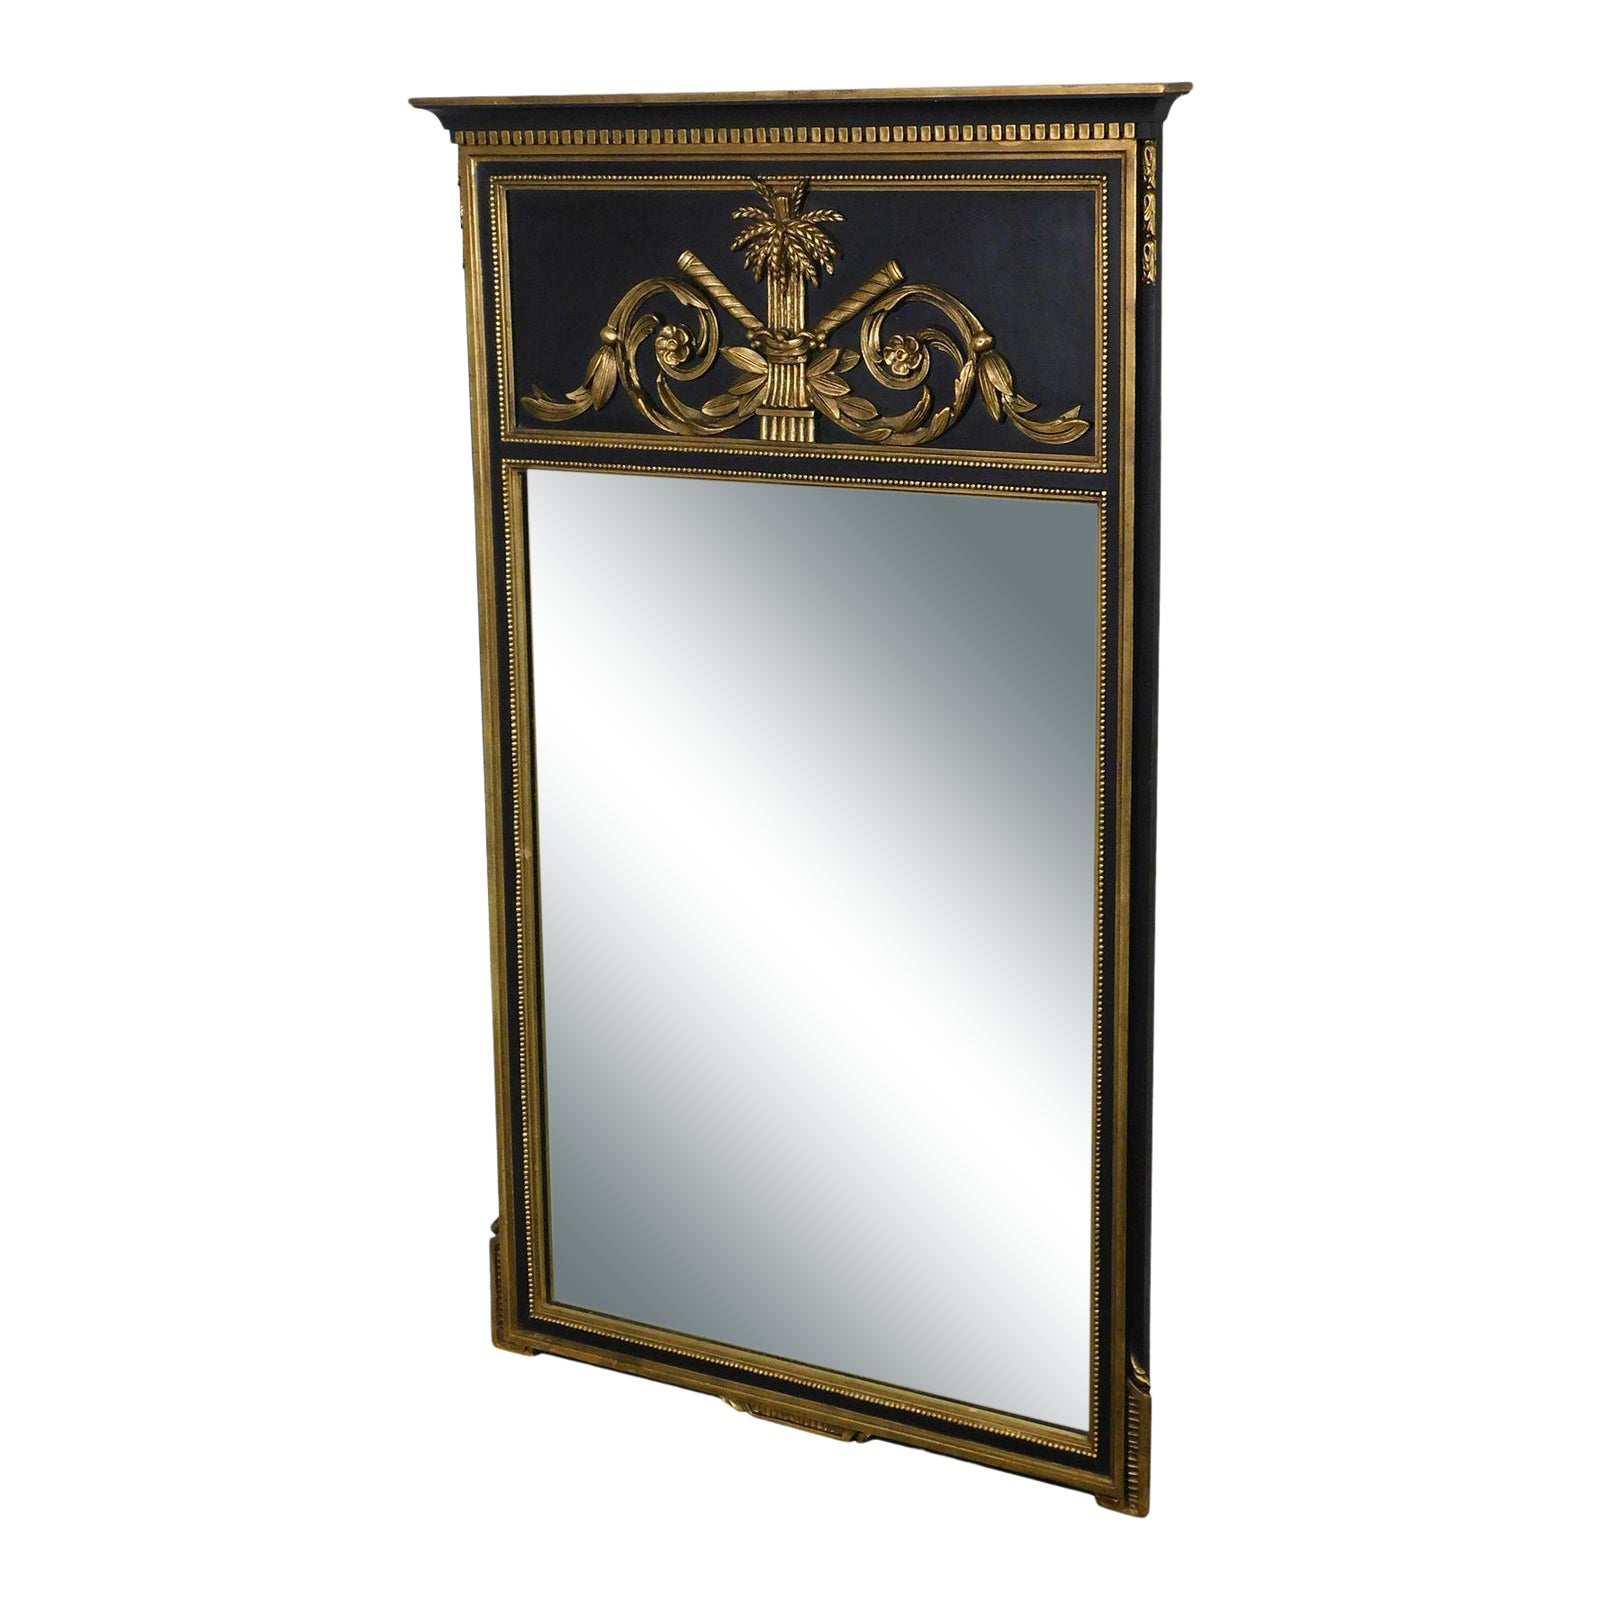 Friedman Brothers French Neo Classical Style Black And Gold Wall Mirror Chairish